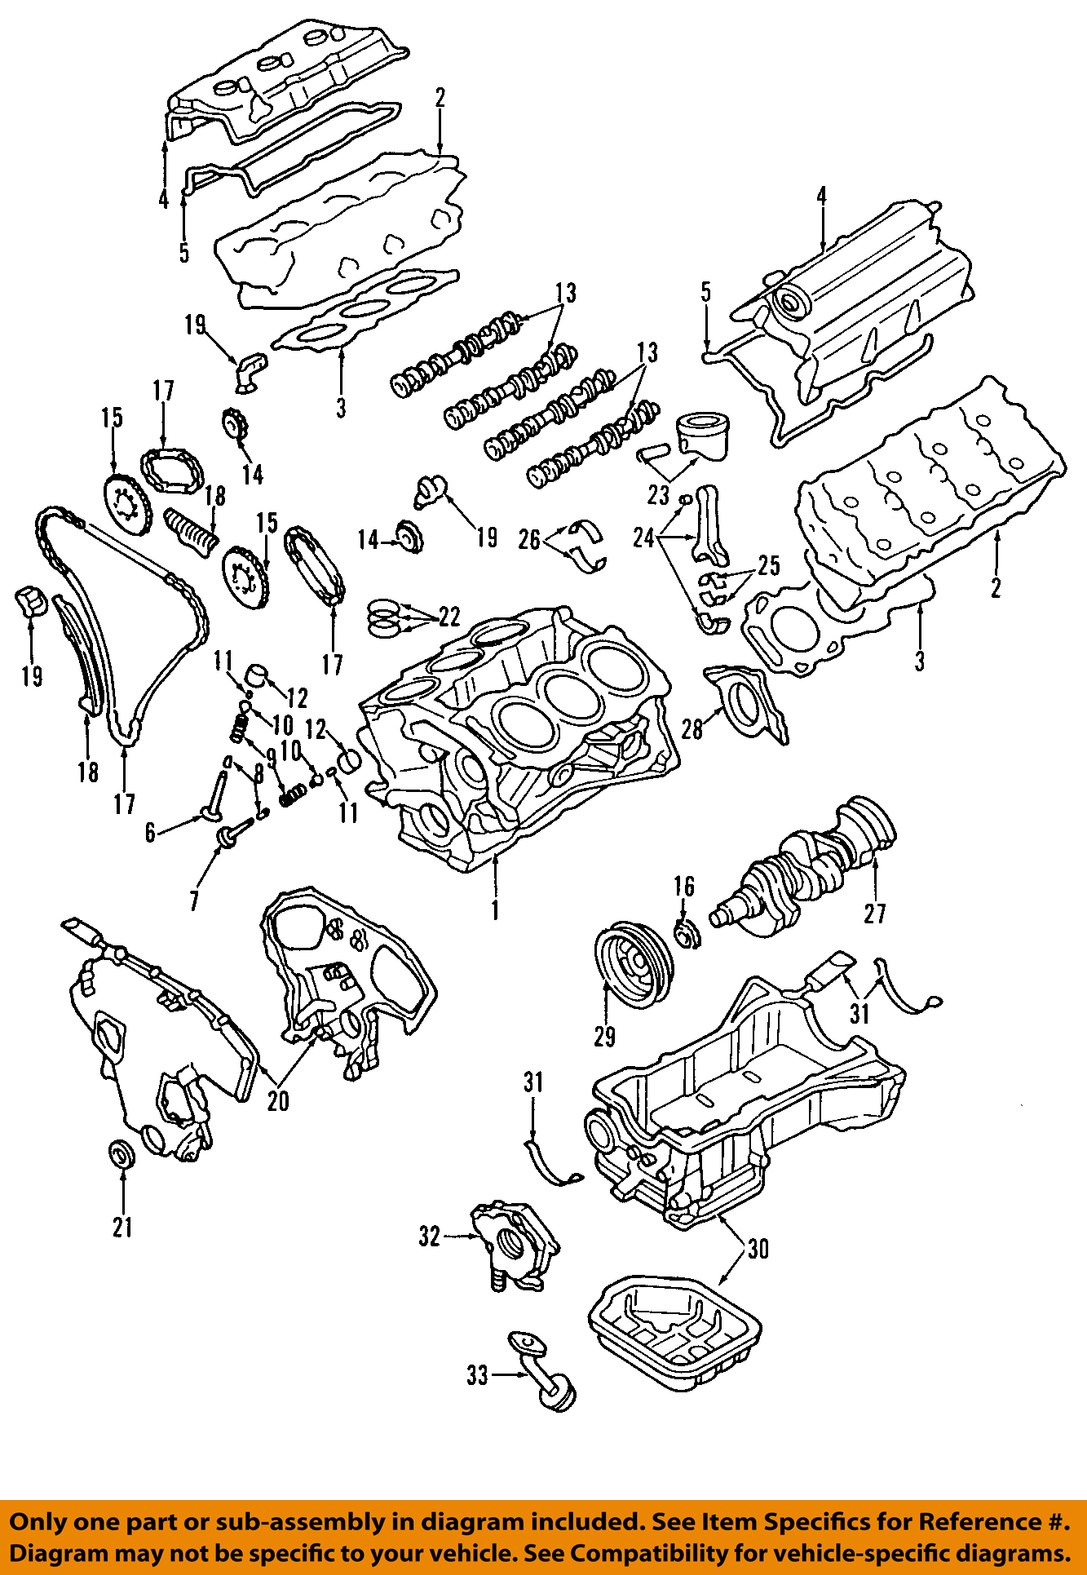 2001 Nissan Engine Diagram And Gasket Wiring Circuit \u2022 Subaru Body  Parts Diagram Rear Bmw Z3 Oem Parts Diagram